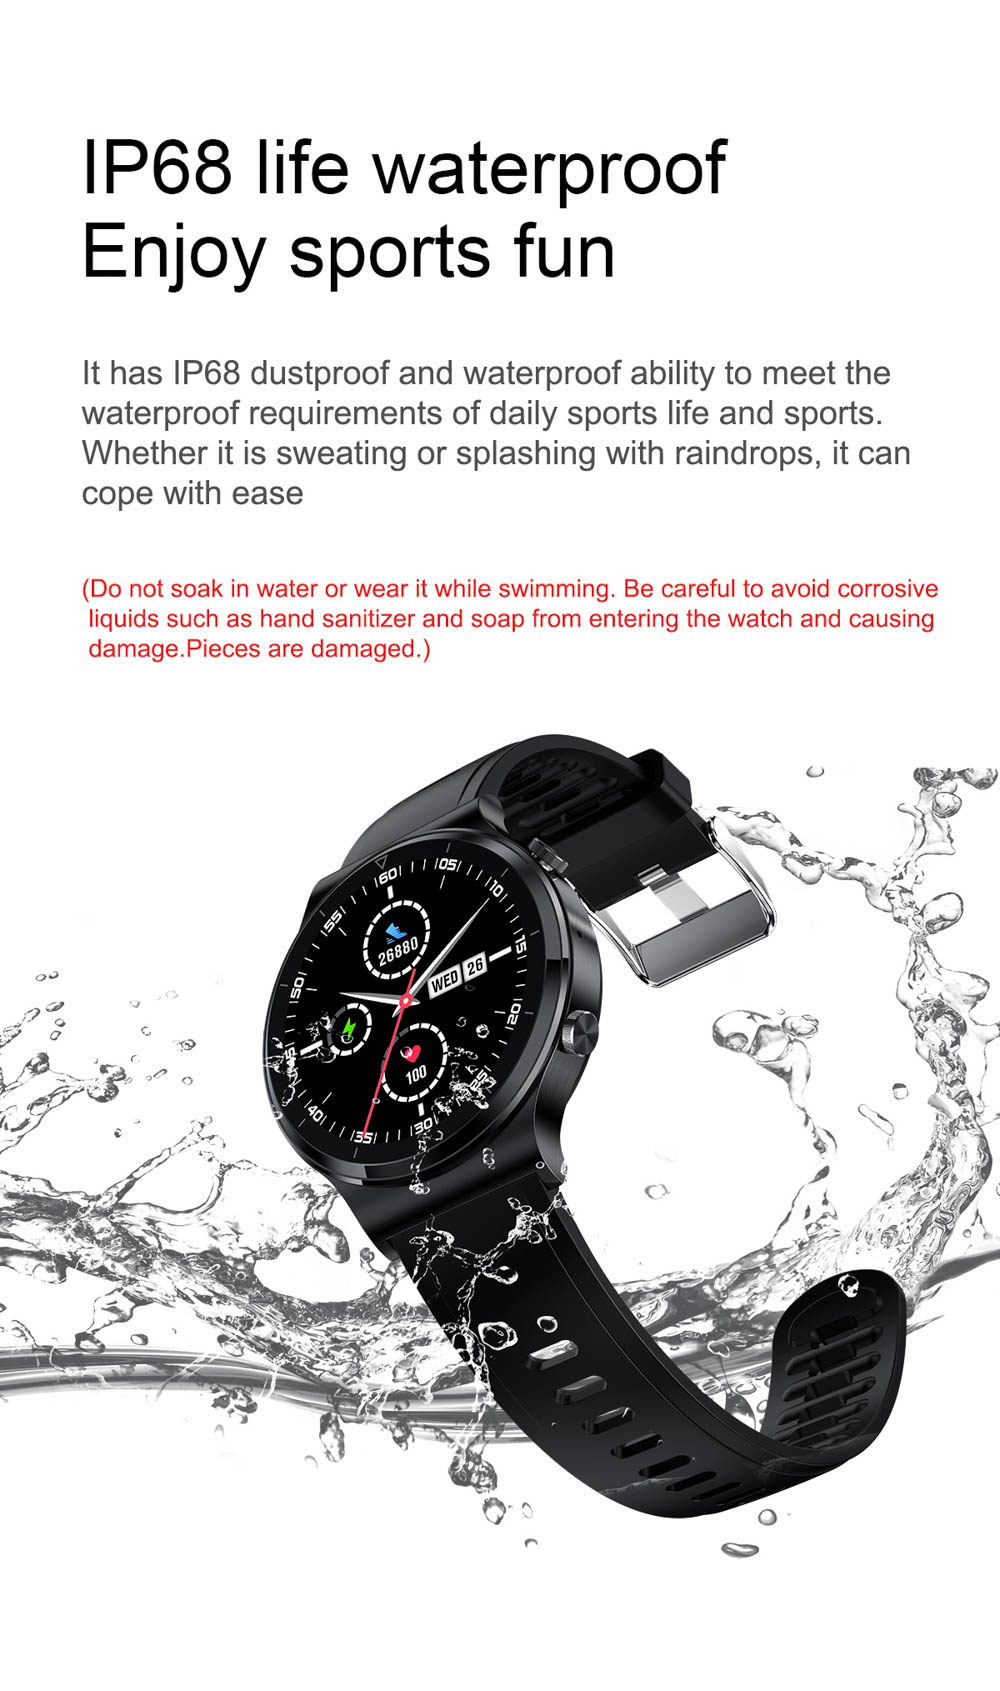 H5eb738e9eb2c4fc2bc83716f7f7318d2i NUOBO 2021 New Smart Watch Men Bluetooth Call Heart Rate Blood Pressure Sports IP68 Waterproof Smartwatch for Android IOS Phone